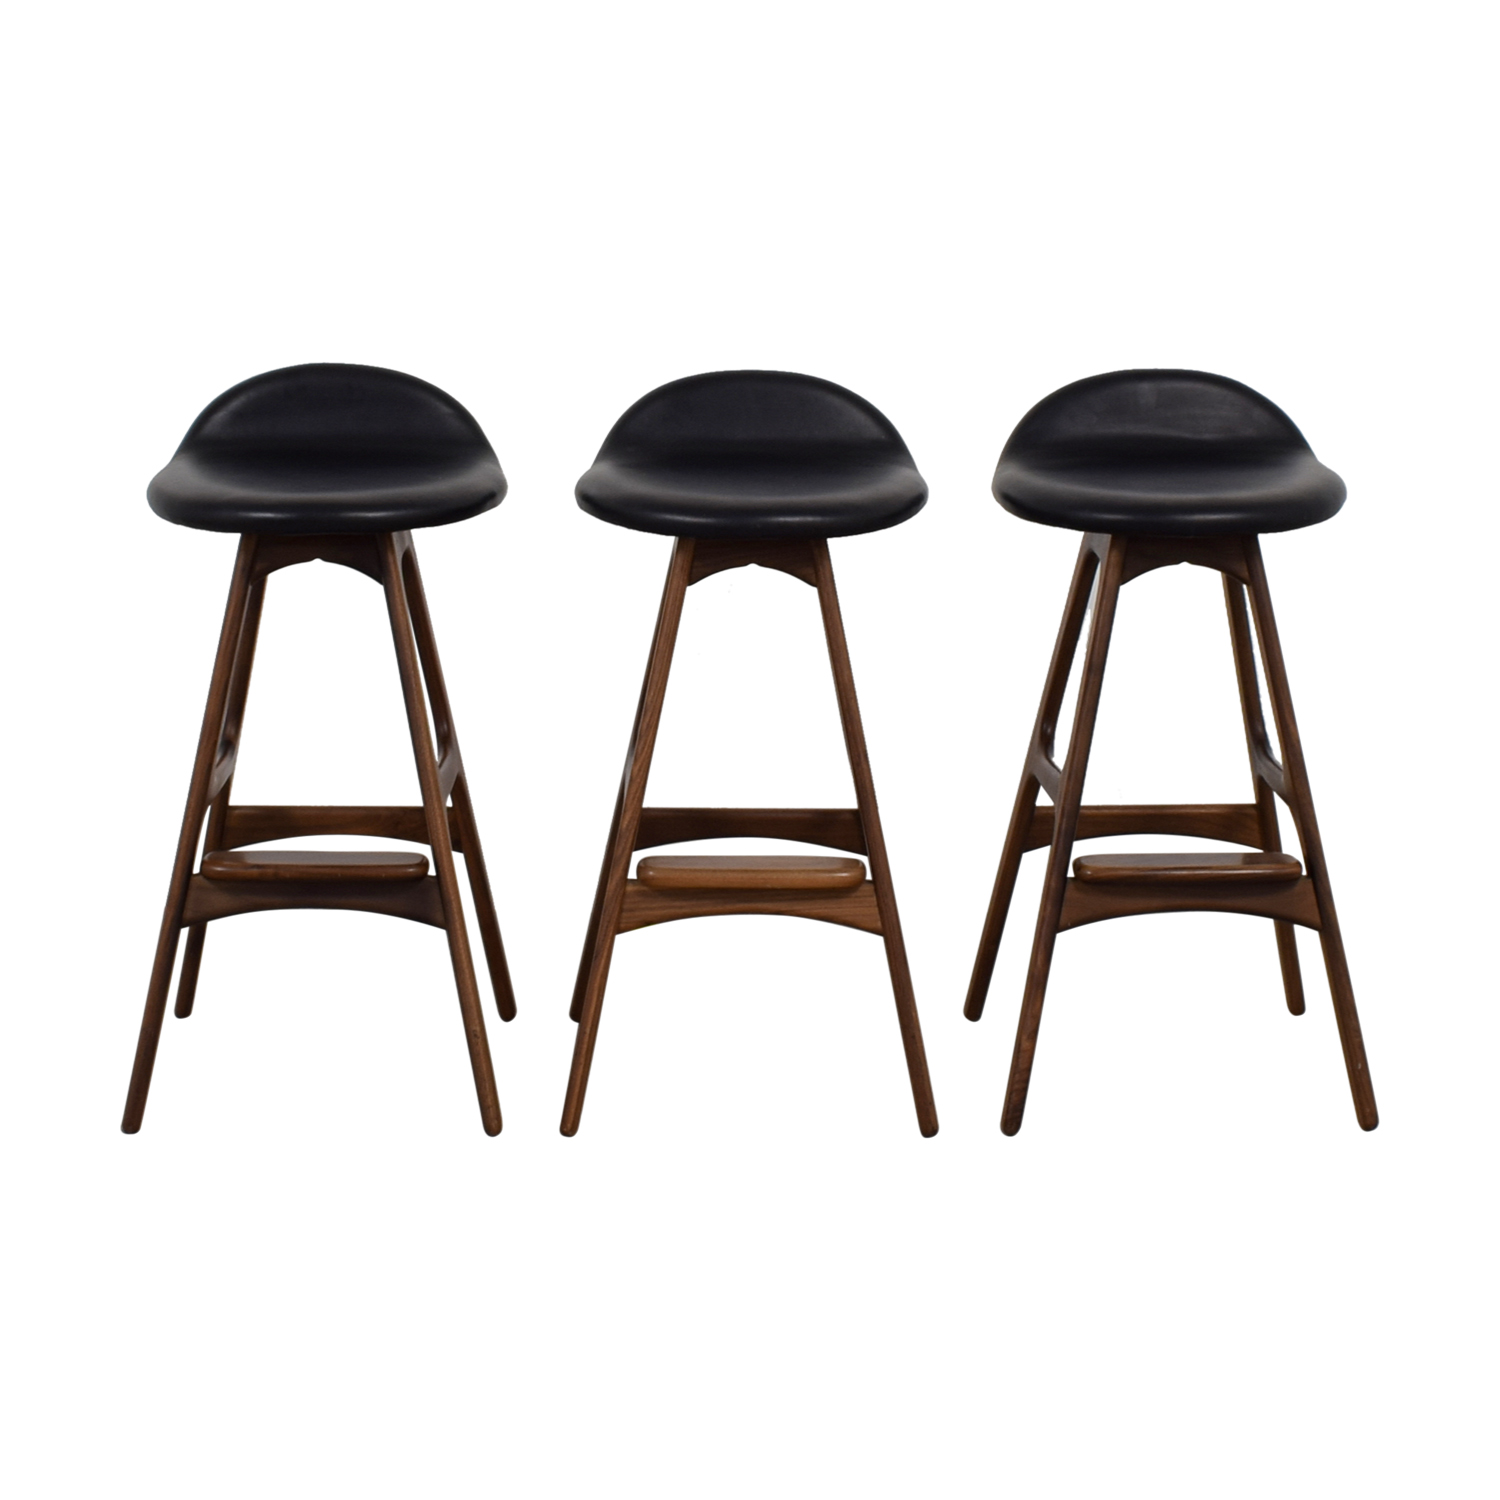 shop Mid-Century Black Leather Bar Stools  Chairs